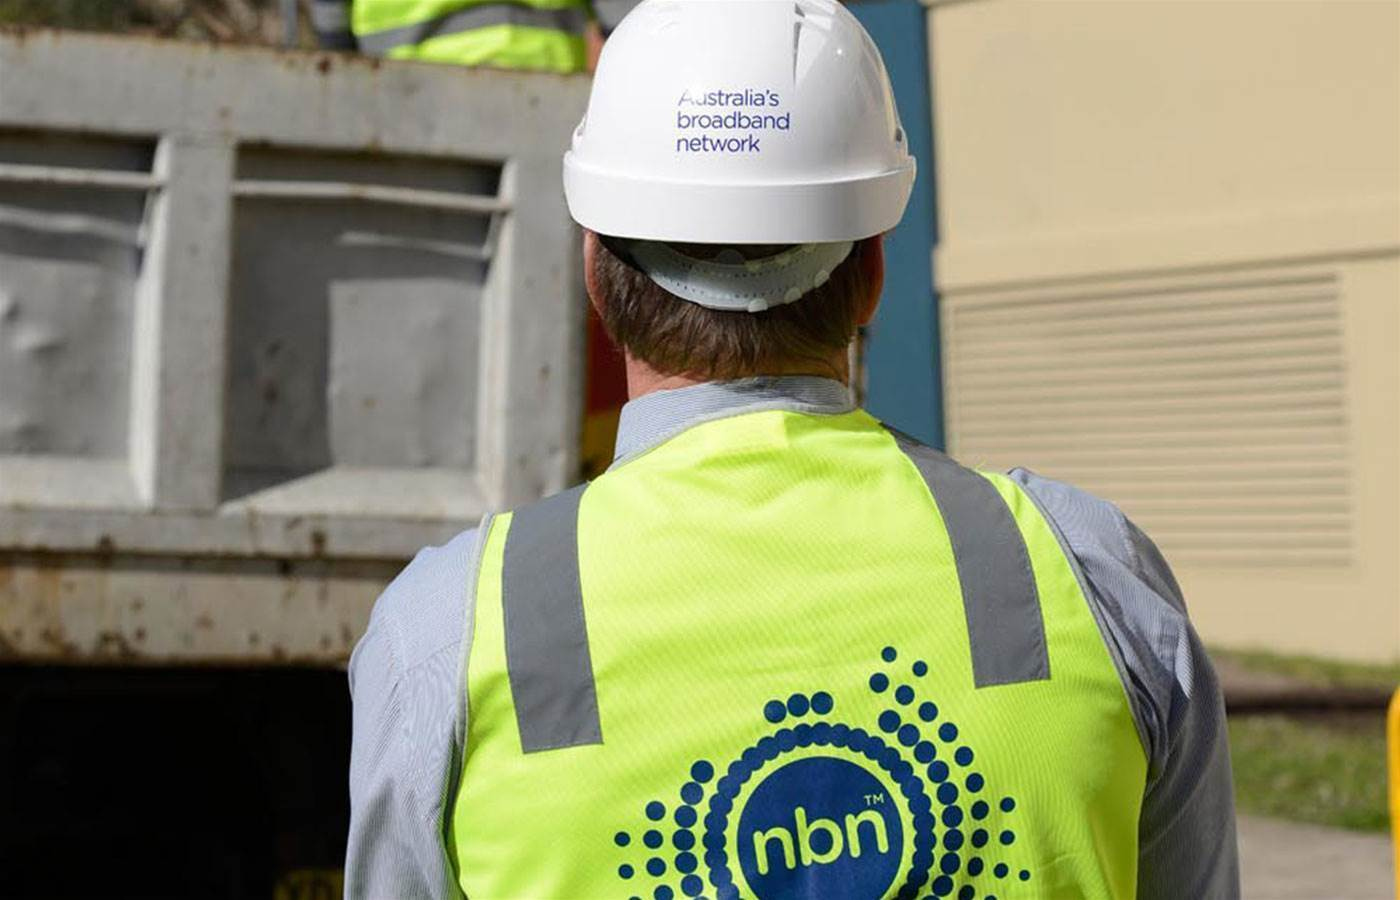 Details emerge on NBN Co's IT partner program